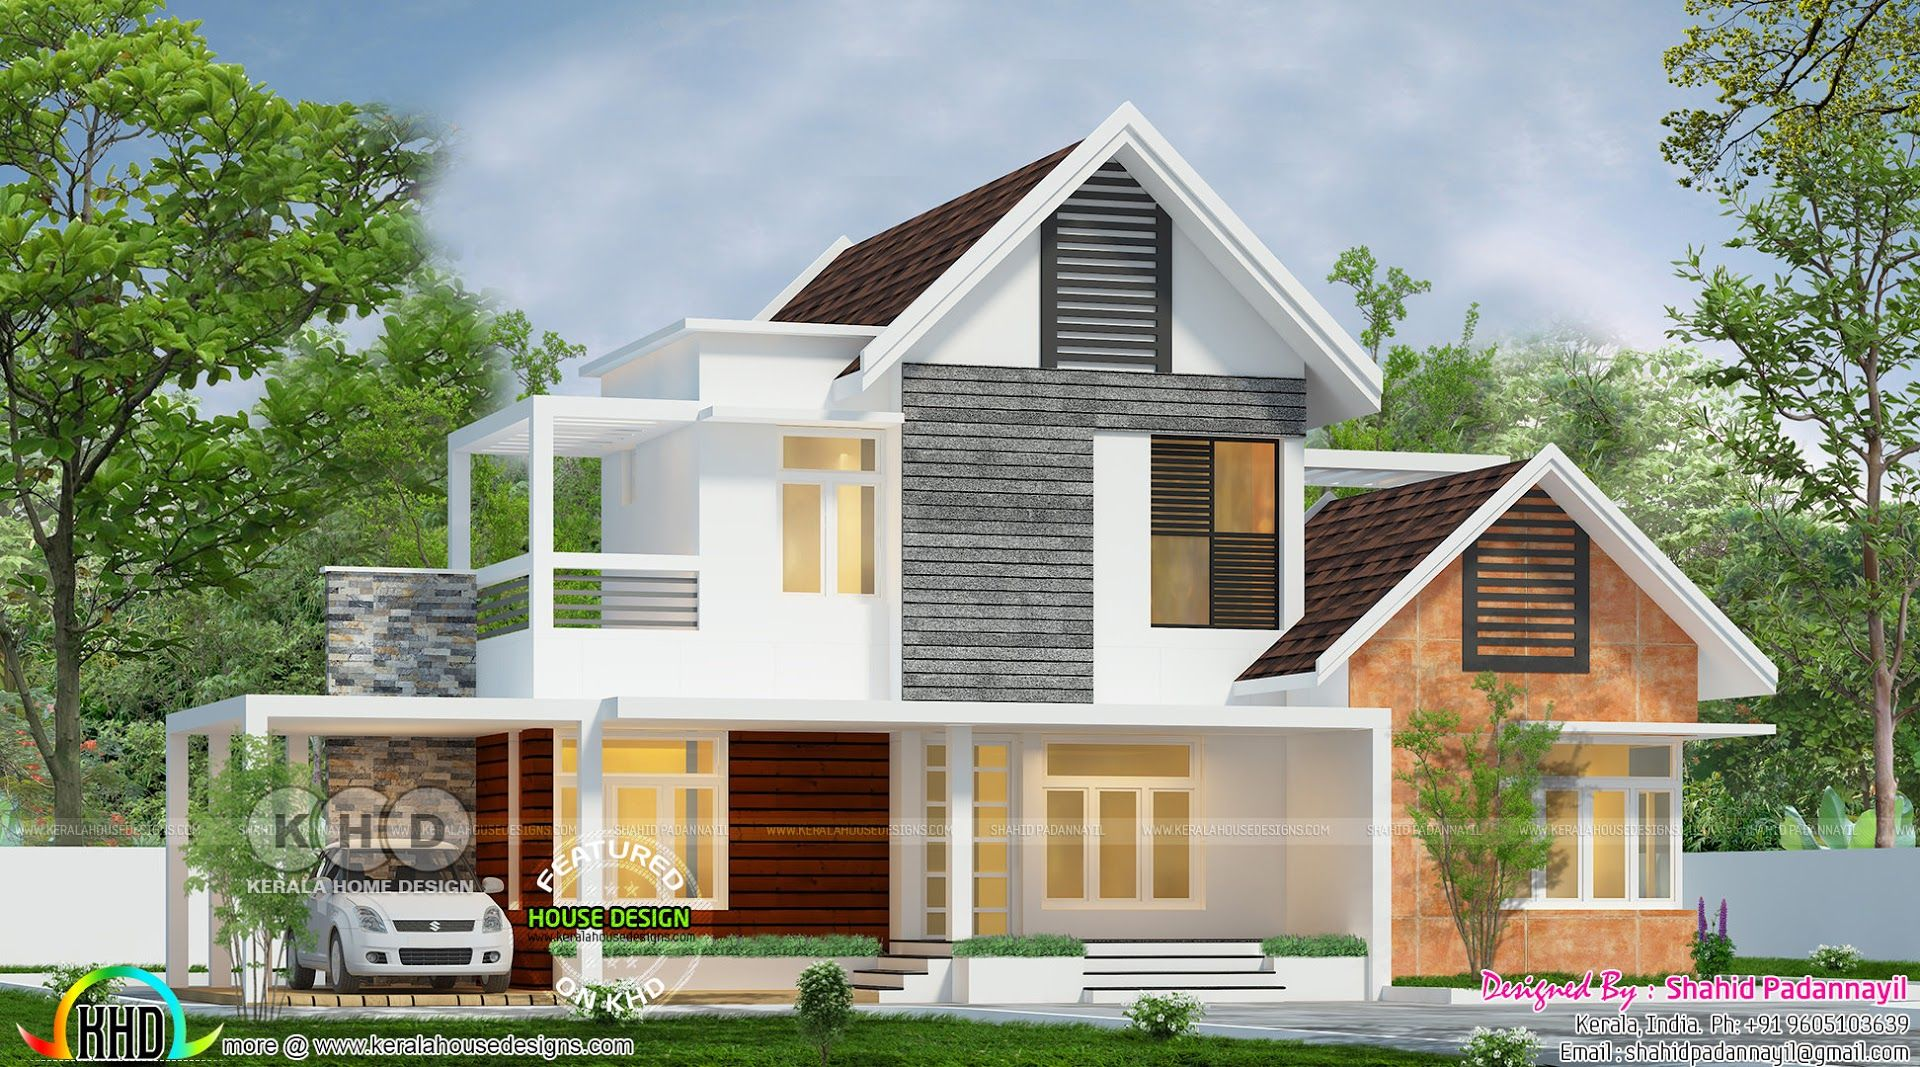 Beautiful Mixed Roof 3 Bedroom House House Plans 3 Bedroom House